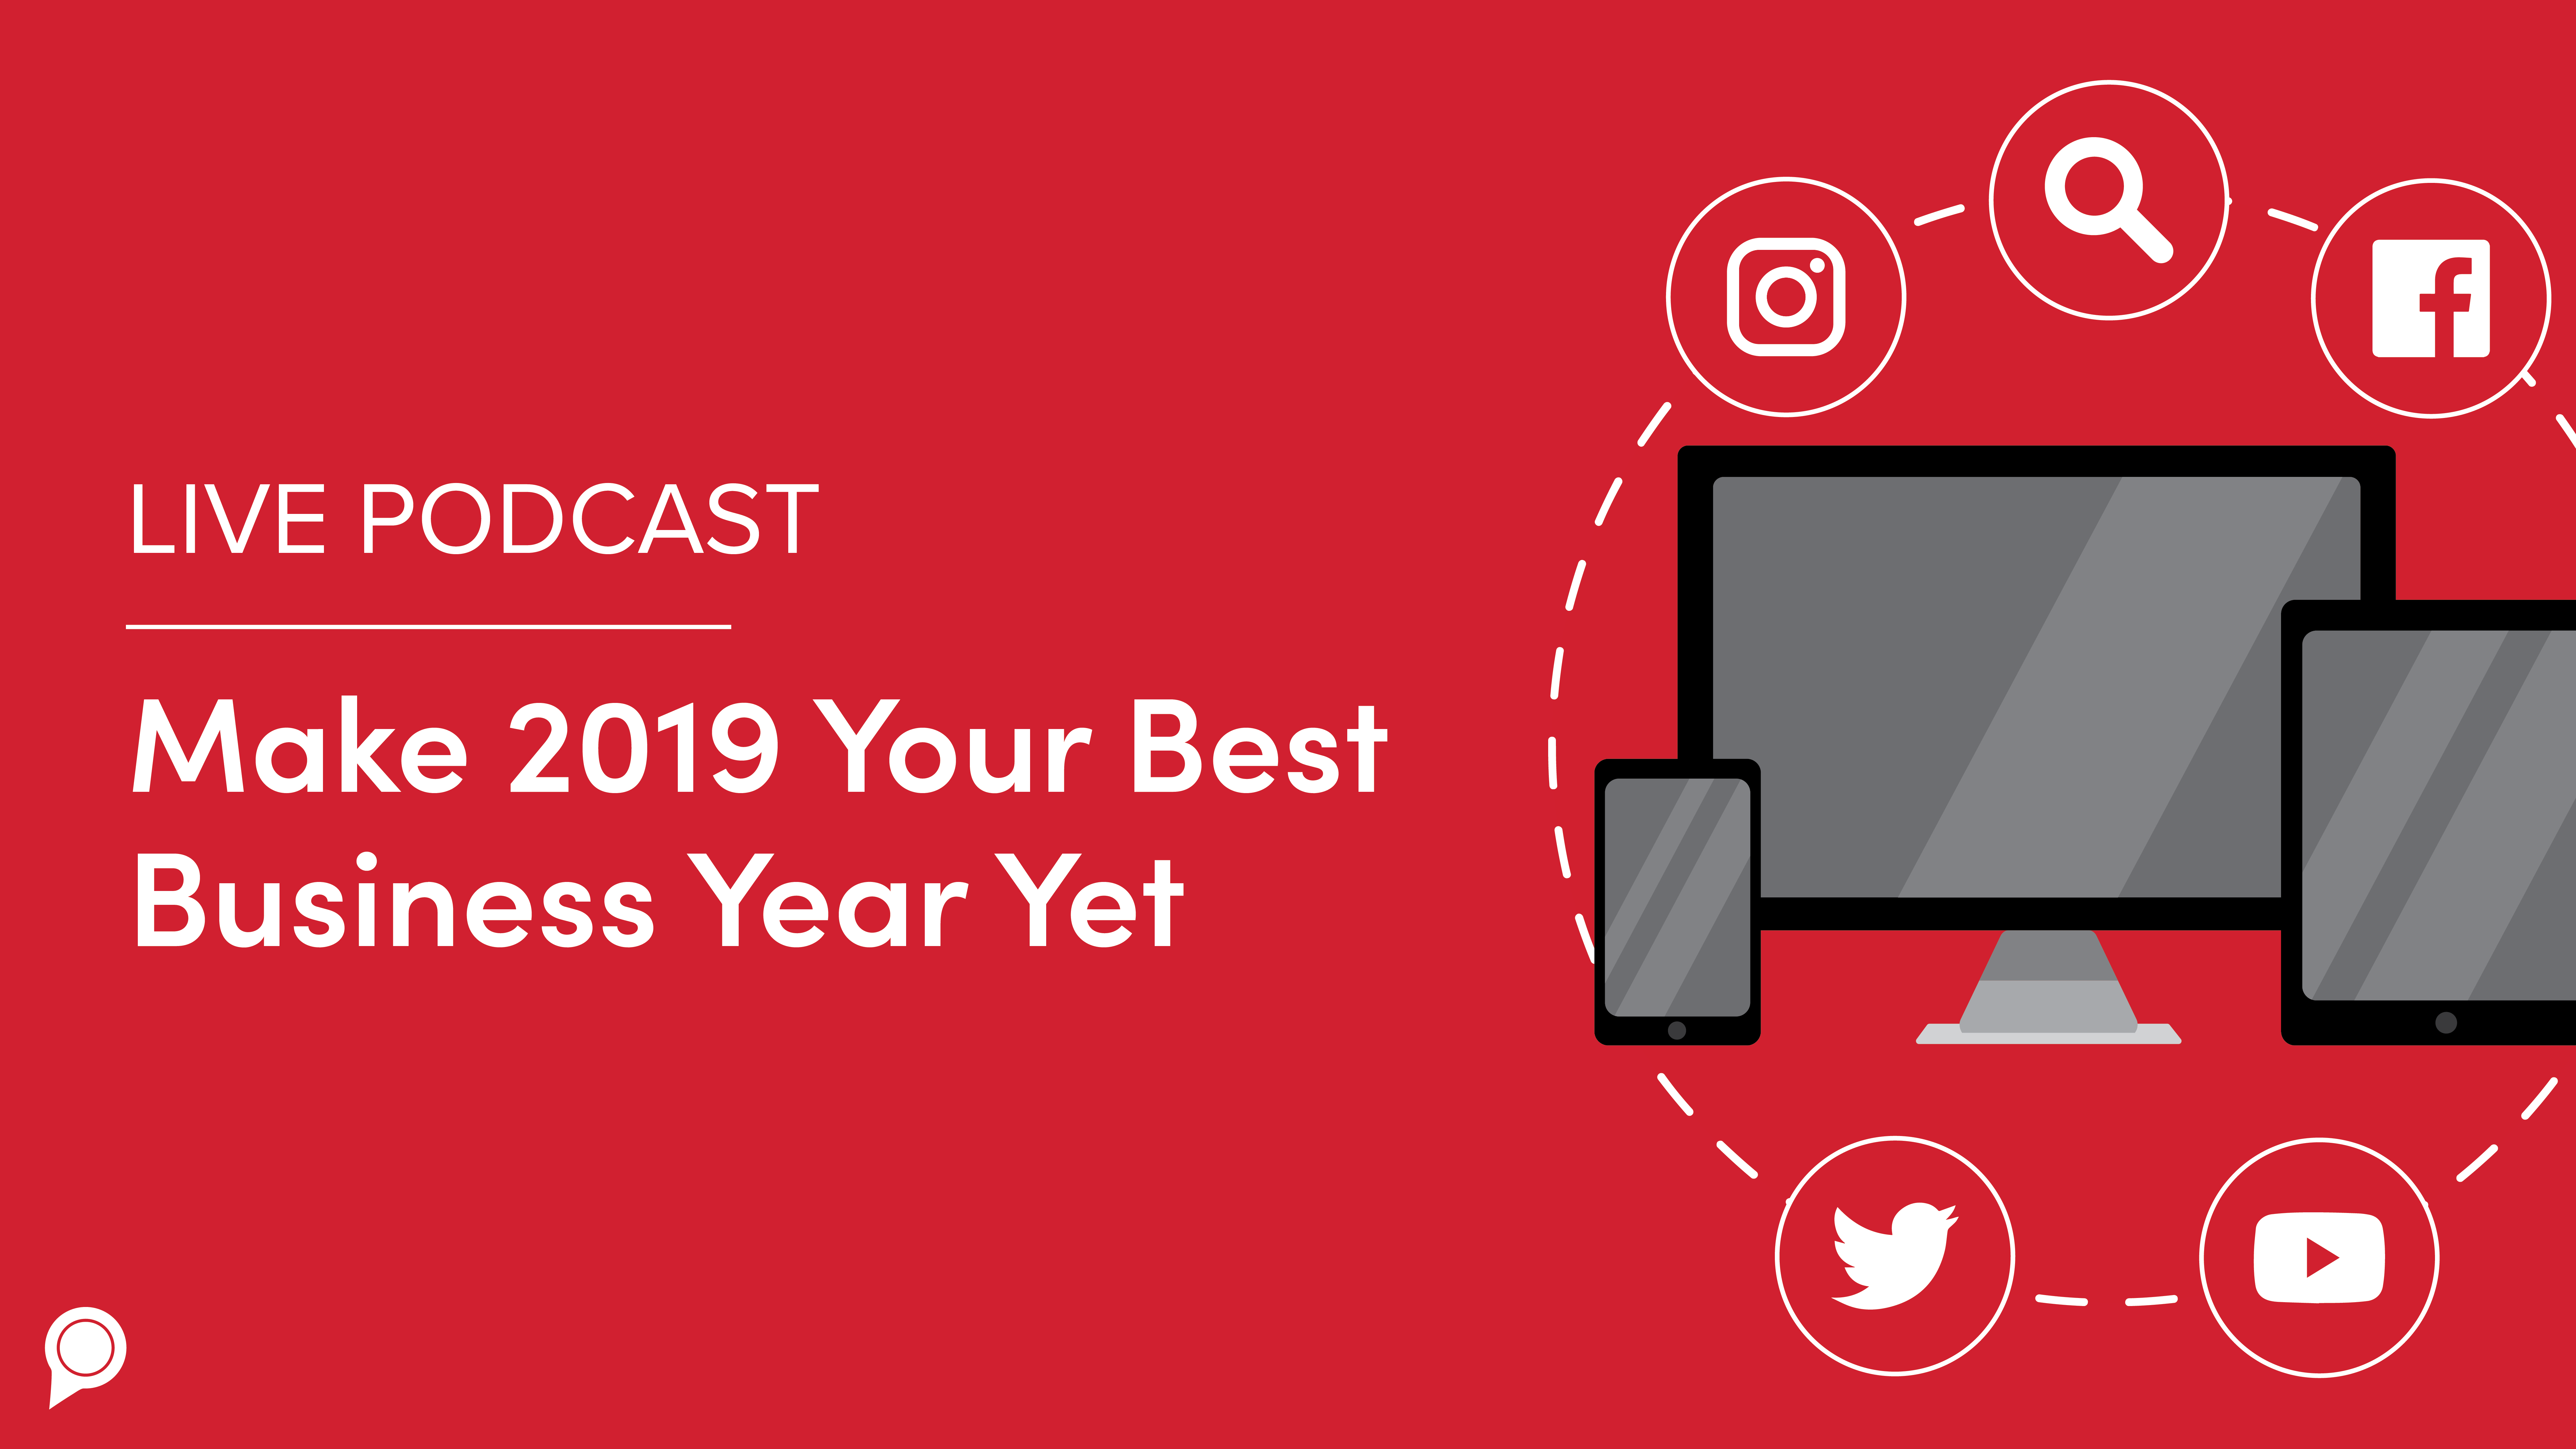 Podcast: Make 2019 Your Best Business Year Yet